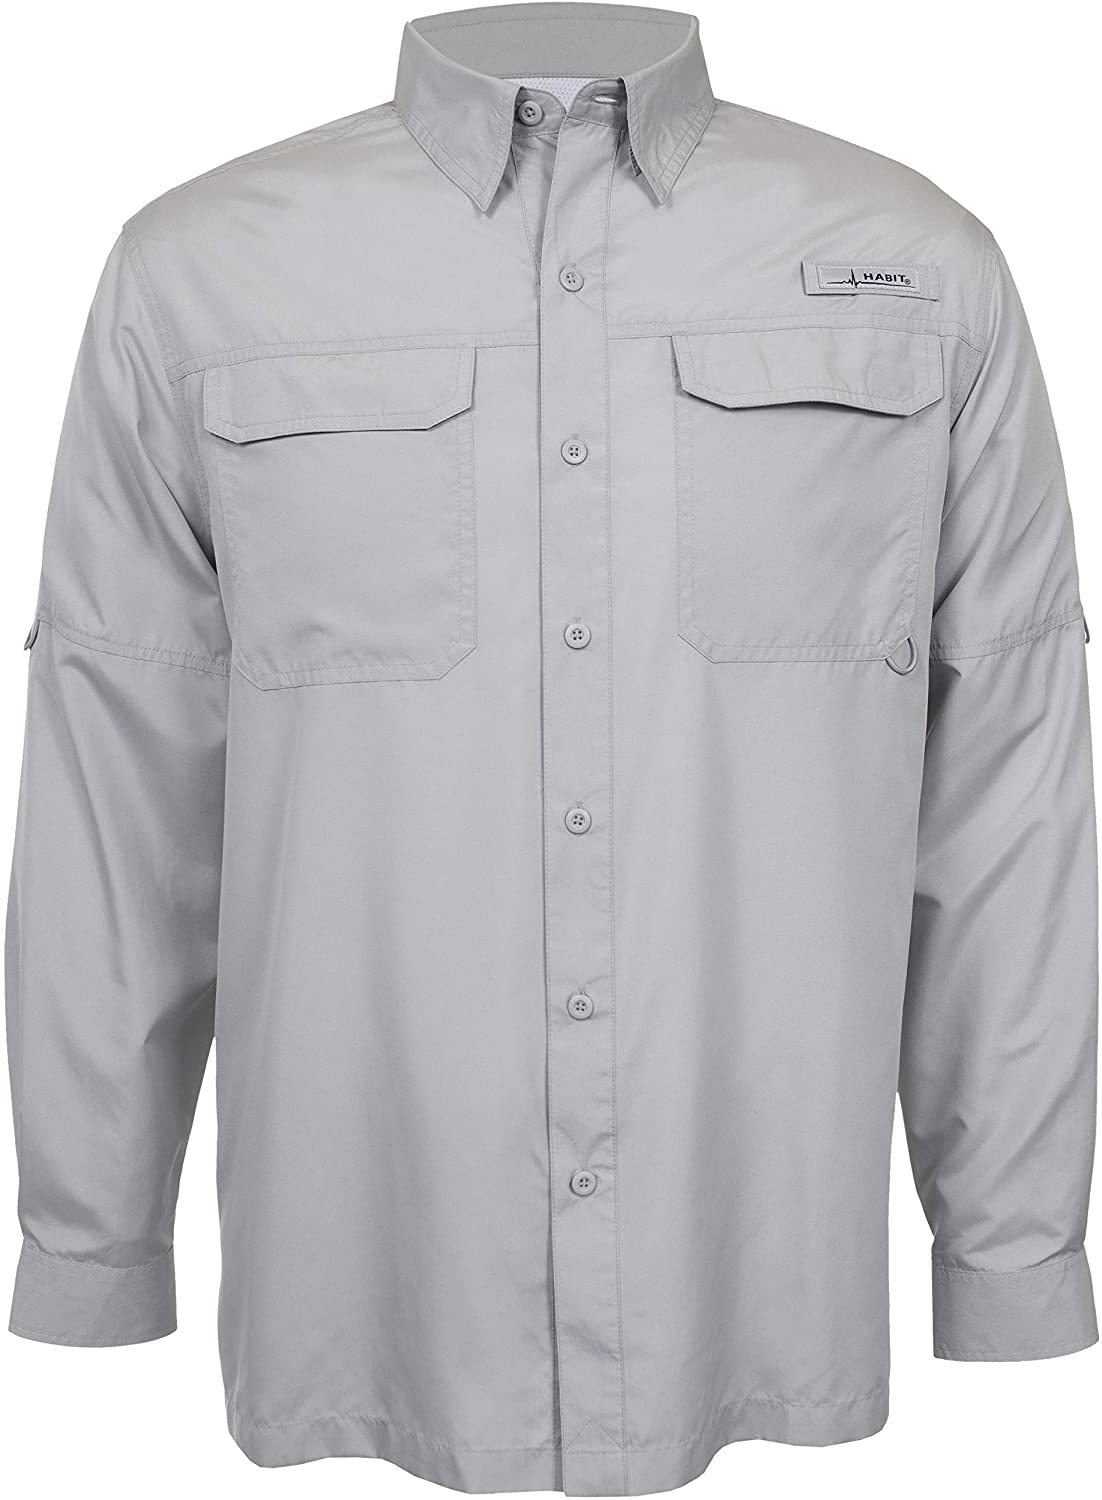 HABIT Men's Belcoast Super beauty product restock quality top Long Sleeve Guide Colorado Springs Mall Shirt River Fishing